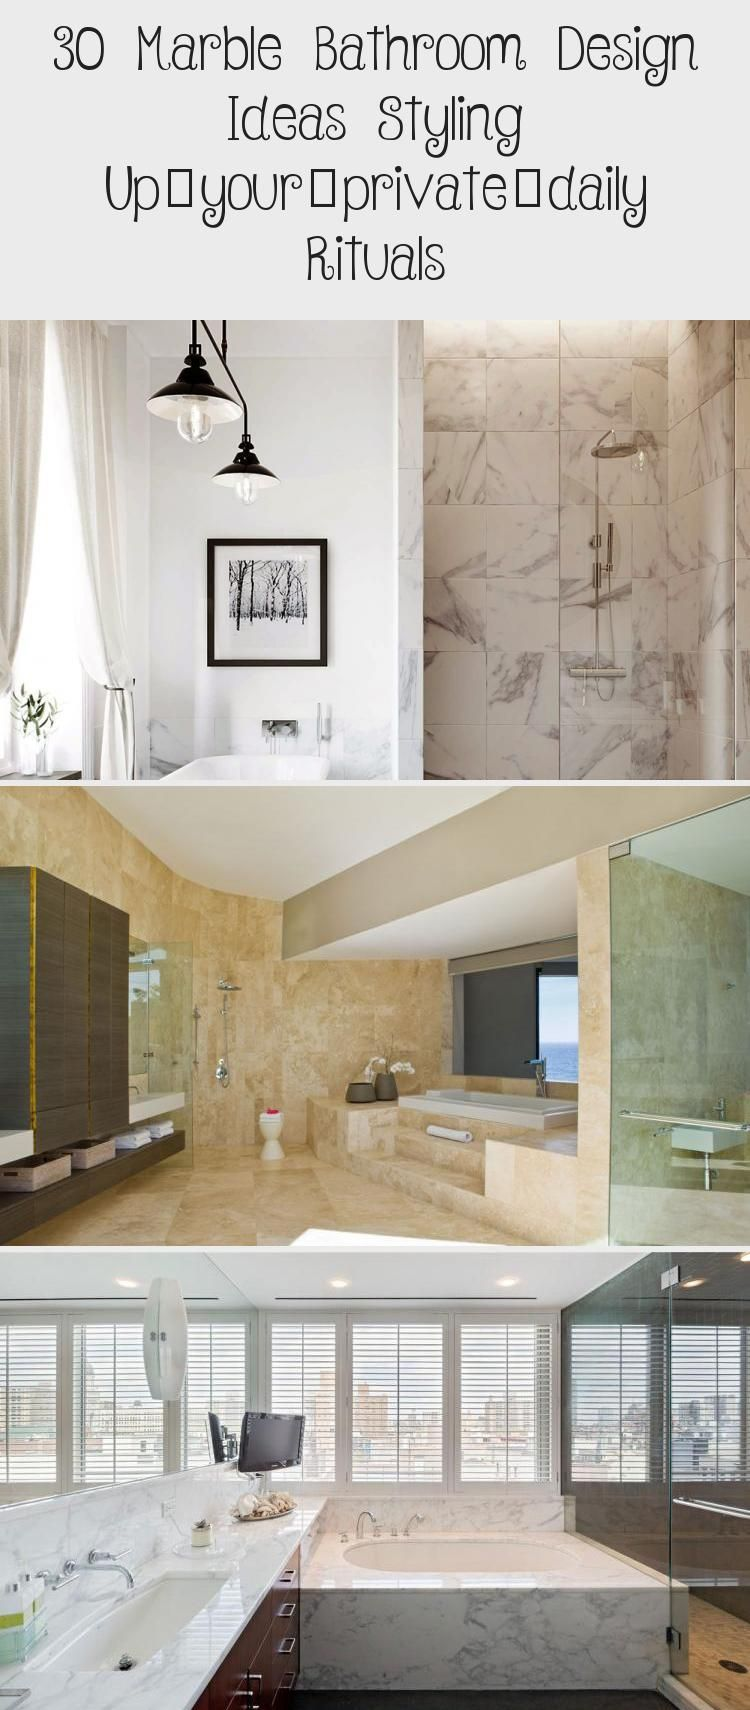 30 Marble Bathroom Design Ideas Styling Up Your Private Daily Rituals In 2020 Marble Bathroom Designs Bathroom Design White Marble Bathrooms